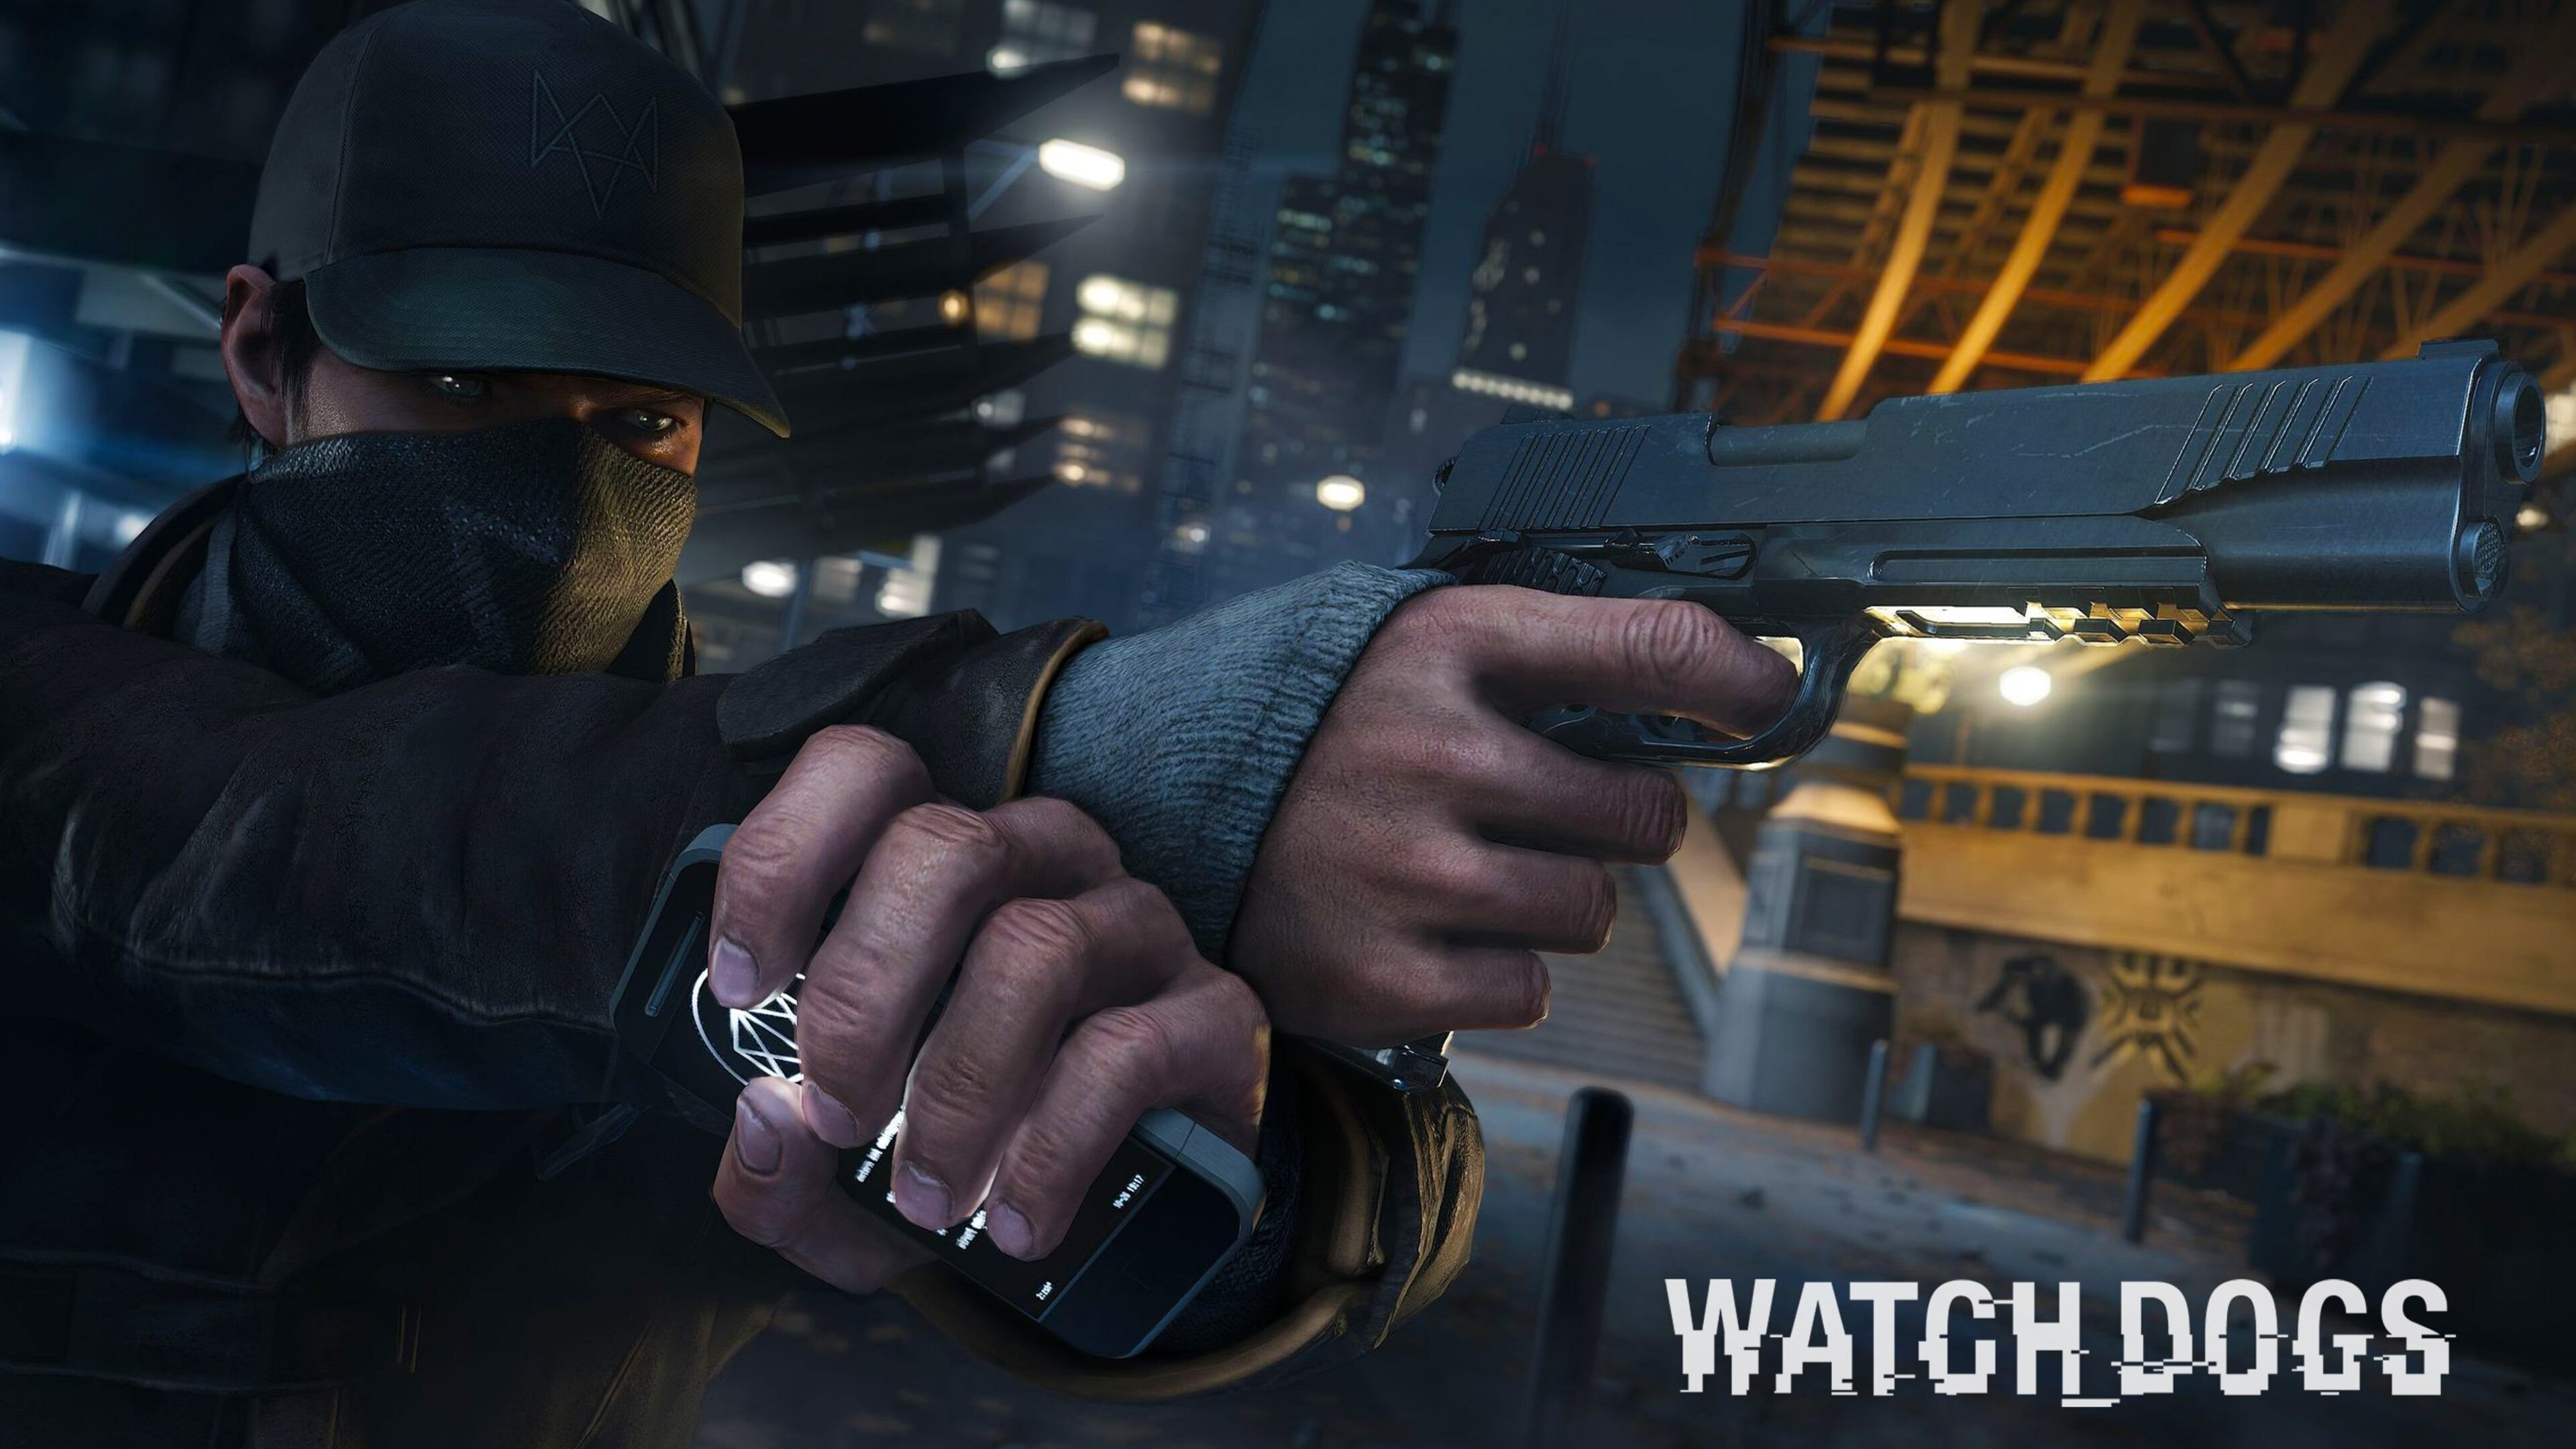 http://hdqwalls.com/download/watch-dogs-3840x2160.jpg